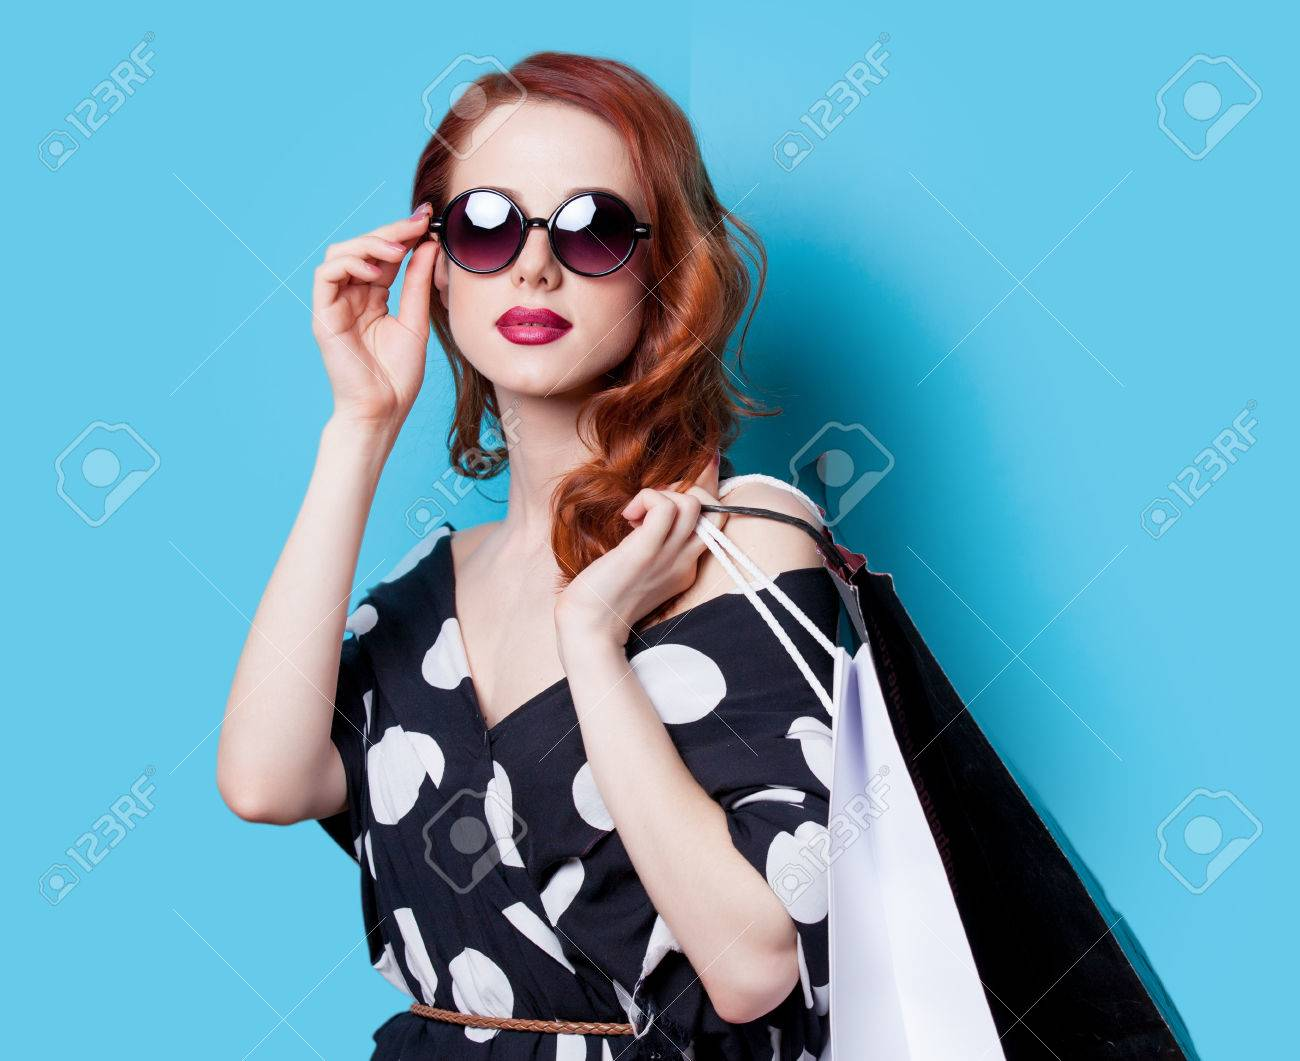 Redhead girl in black dress with shopping bags on blue background - 40358101